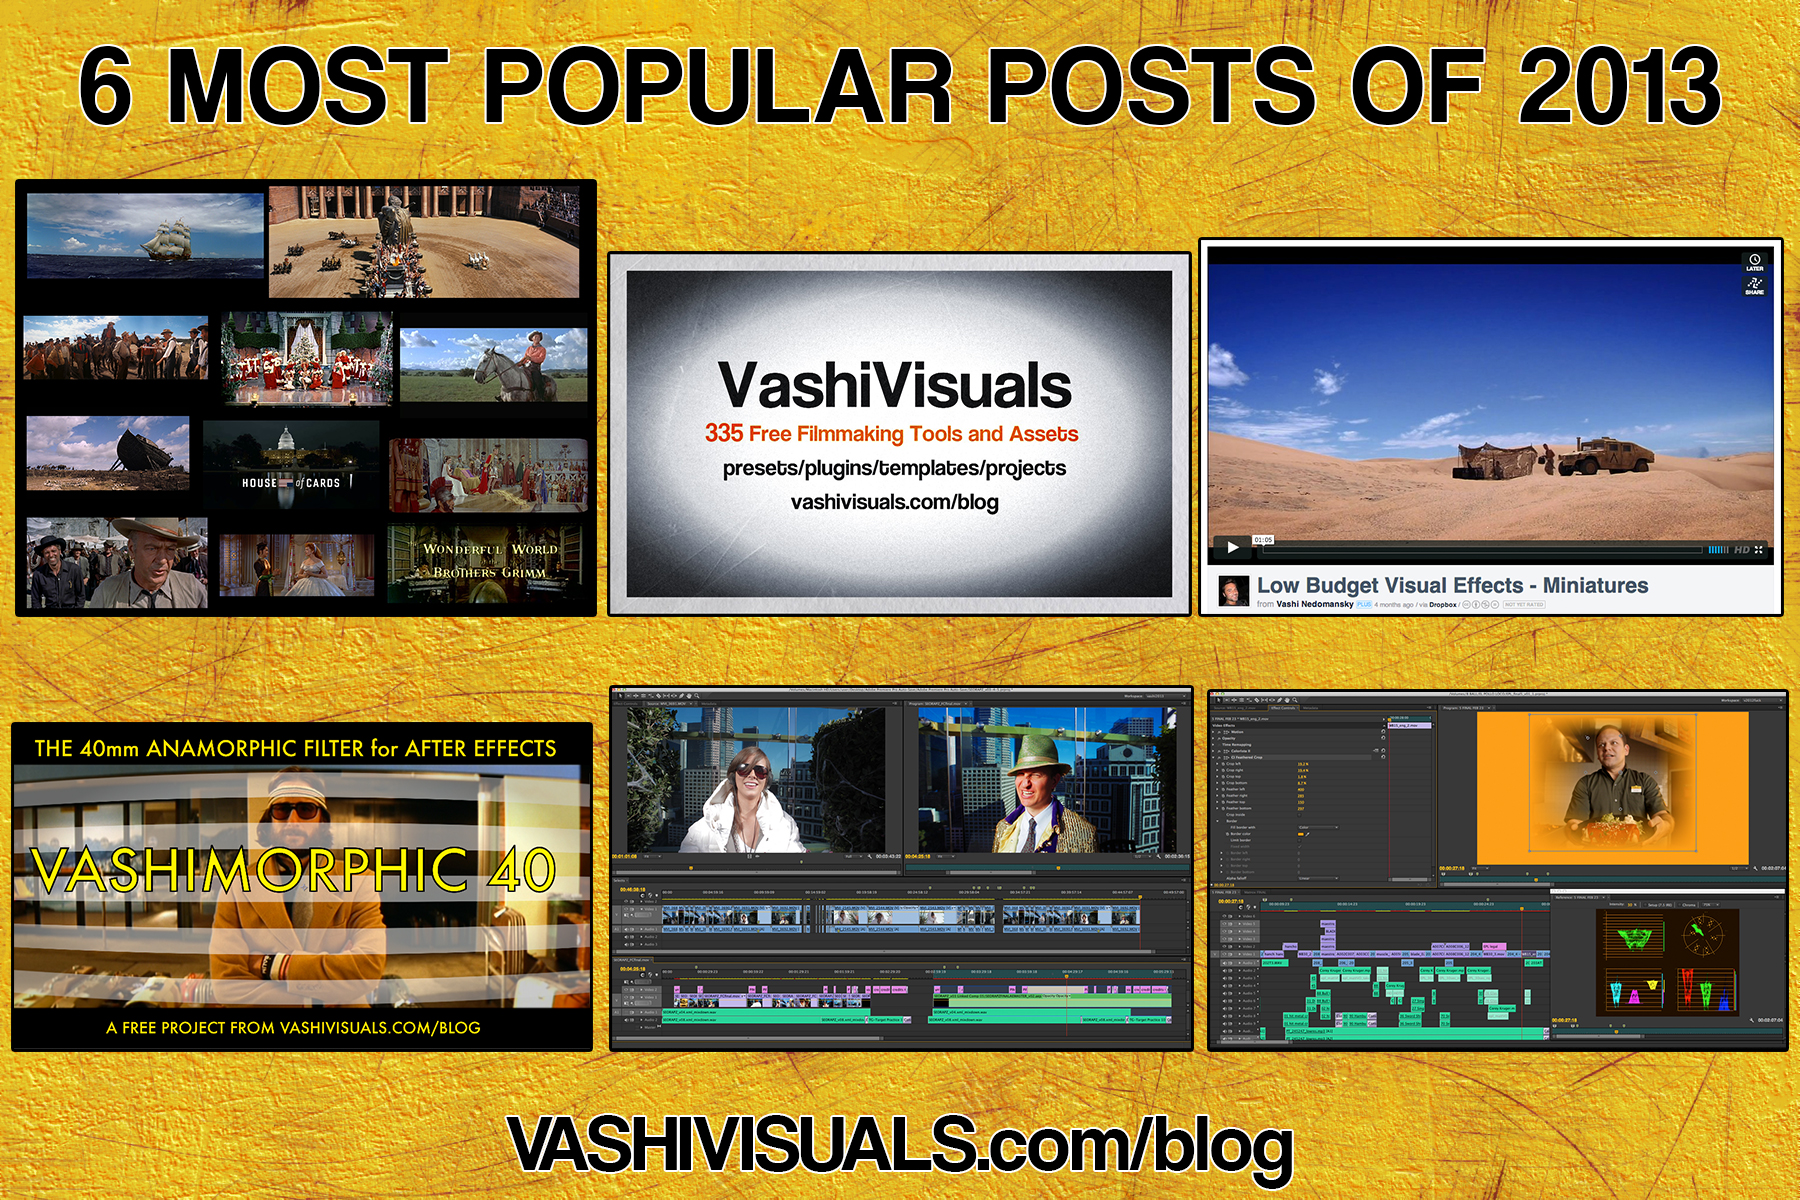 6 most popular posts of 2013 on VashiVisuals Blog